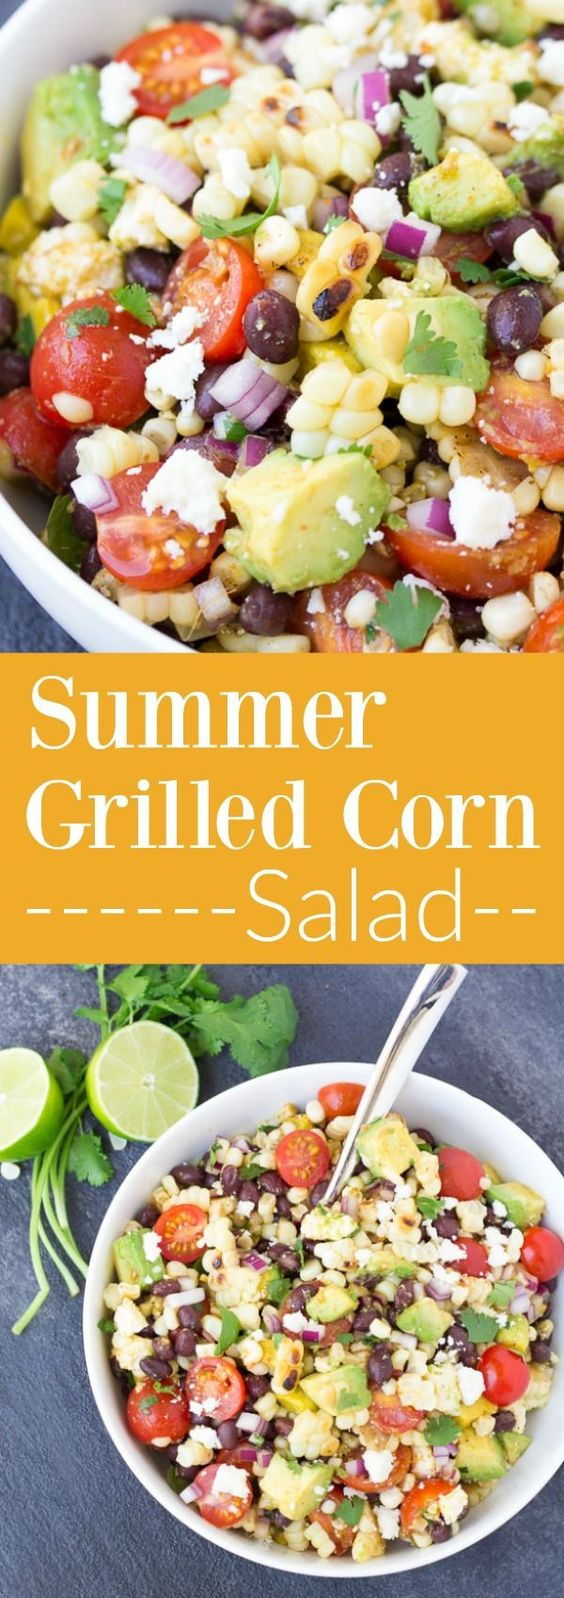 ... salad corn and black grilled corn poblano and black bean salad